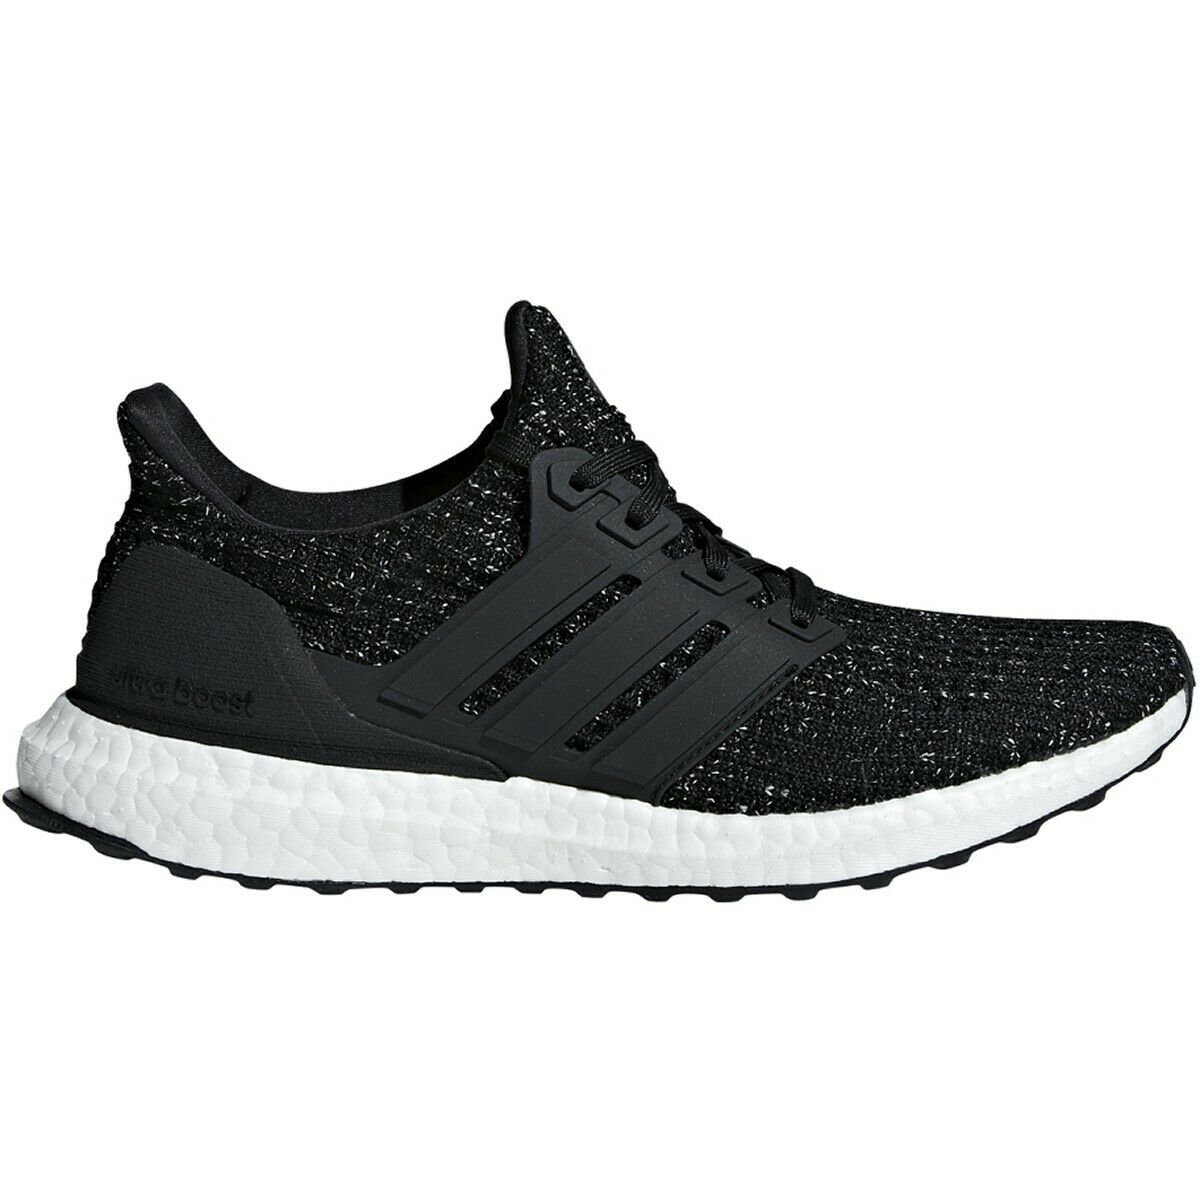 Adidas Women's Ultra Boost - NEW IN BOX - FREE SHIP - Black / White - F36125 +